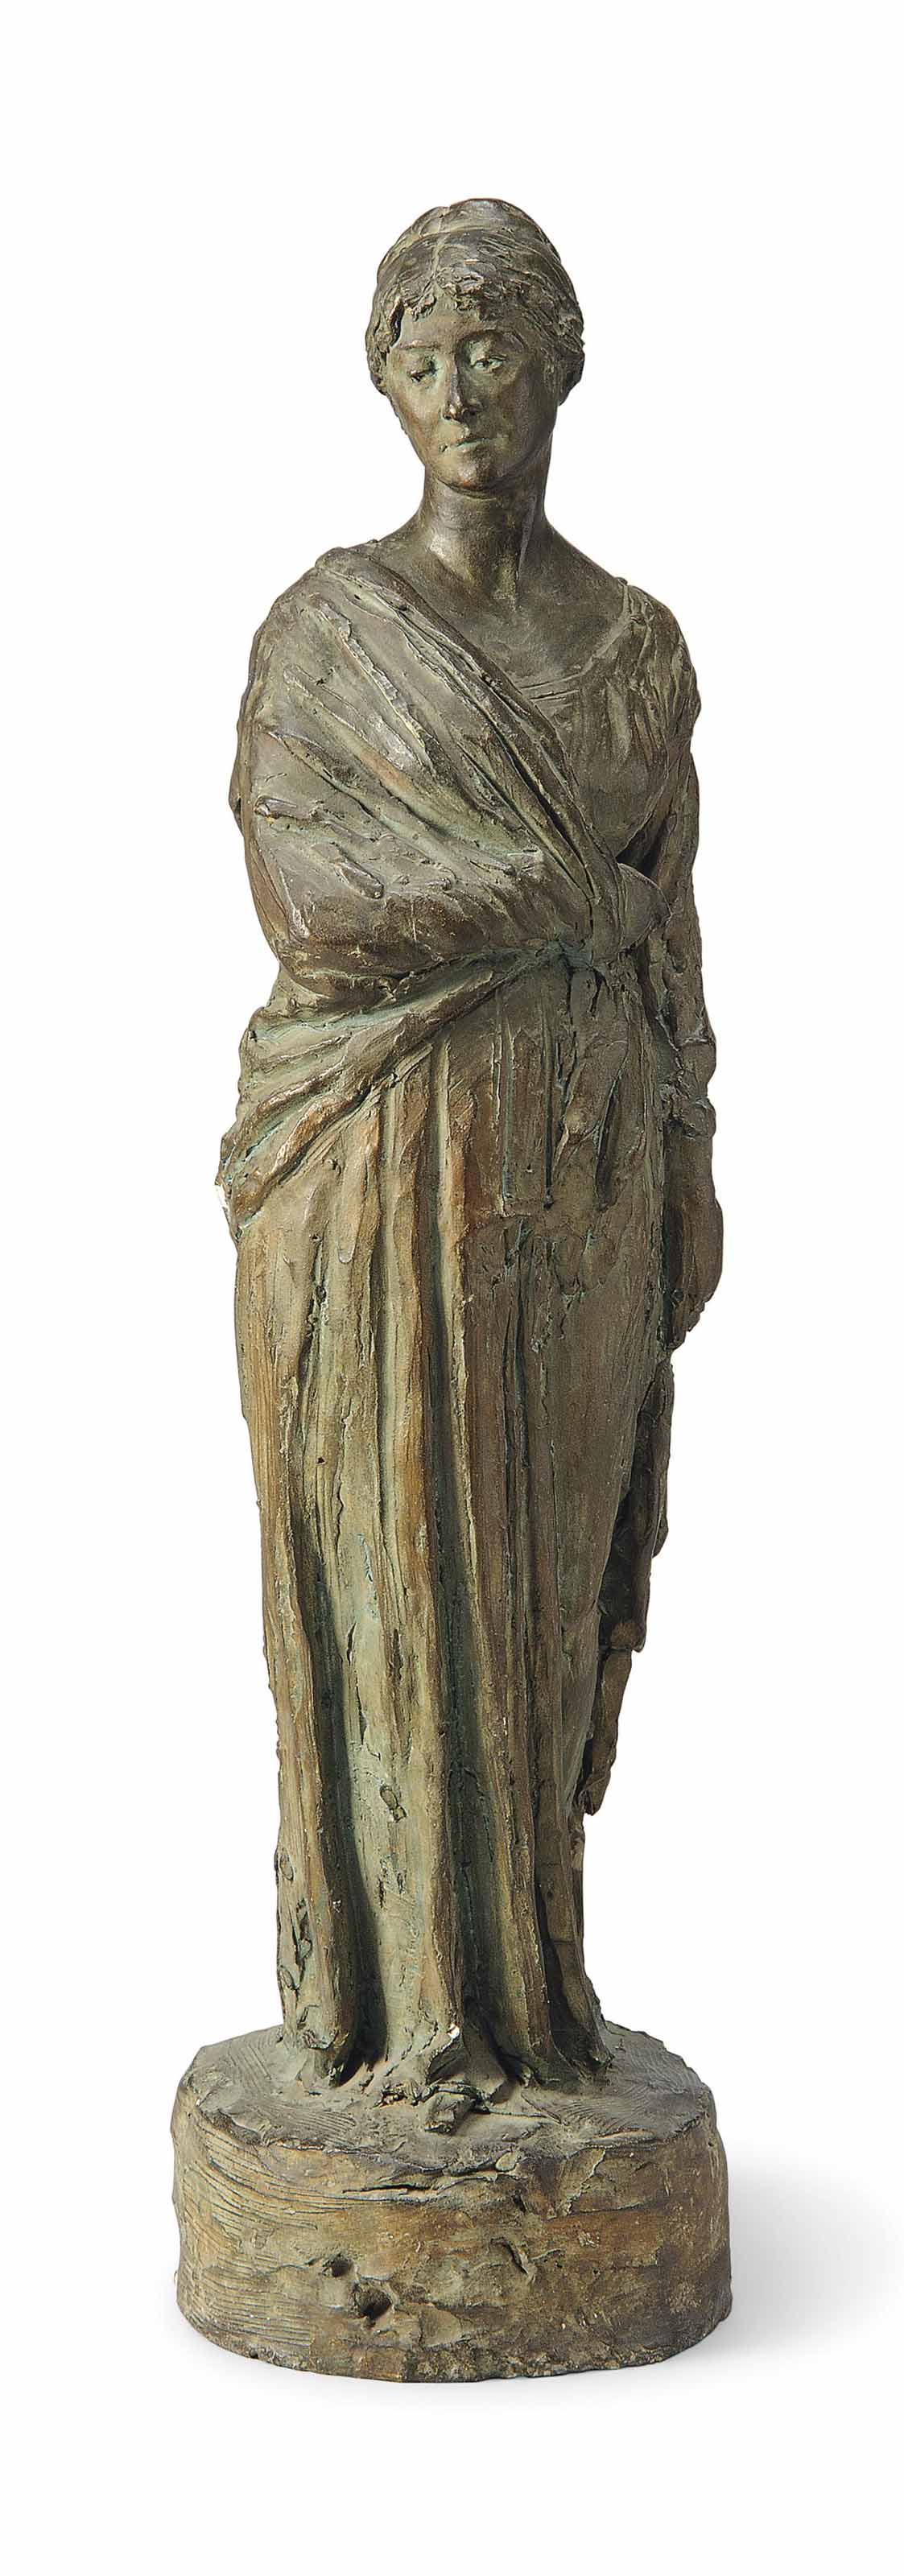 A BRONZED PLASTER FIGURE BELIEVED TO BE ALMINA COUNTESS OF CARNARVON